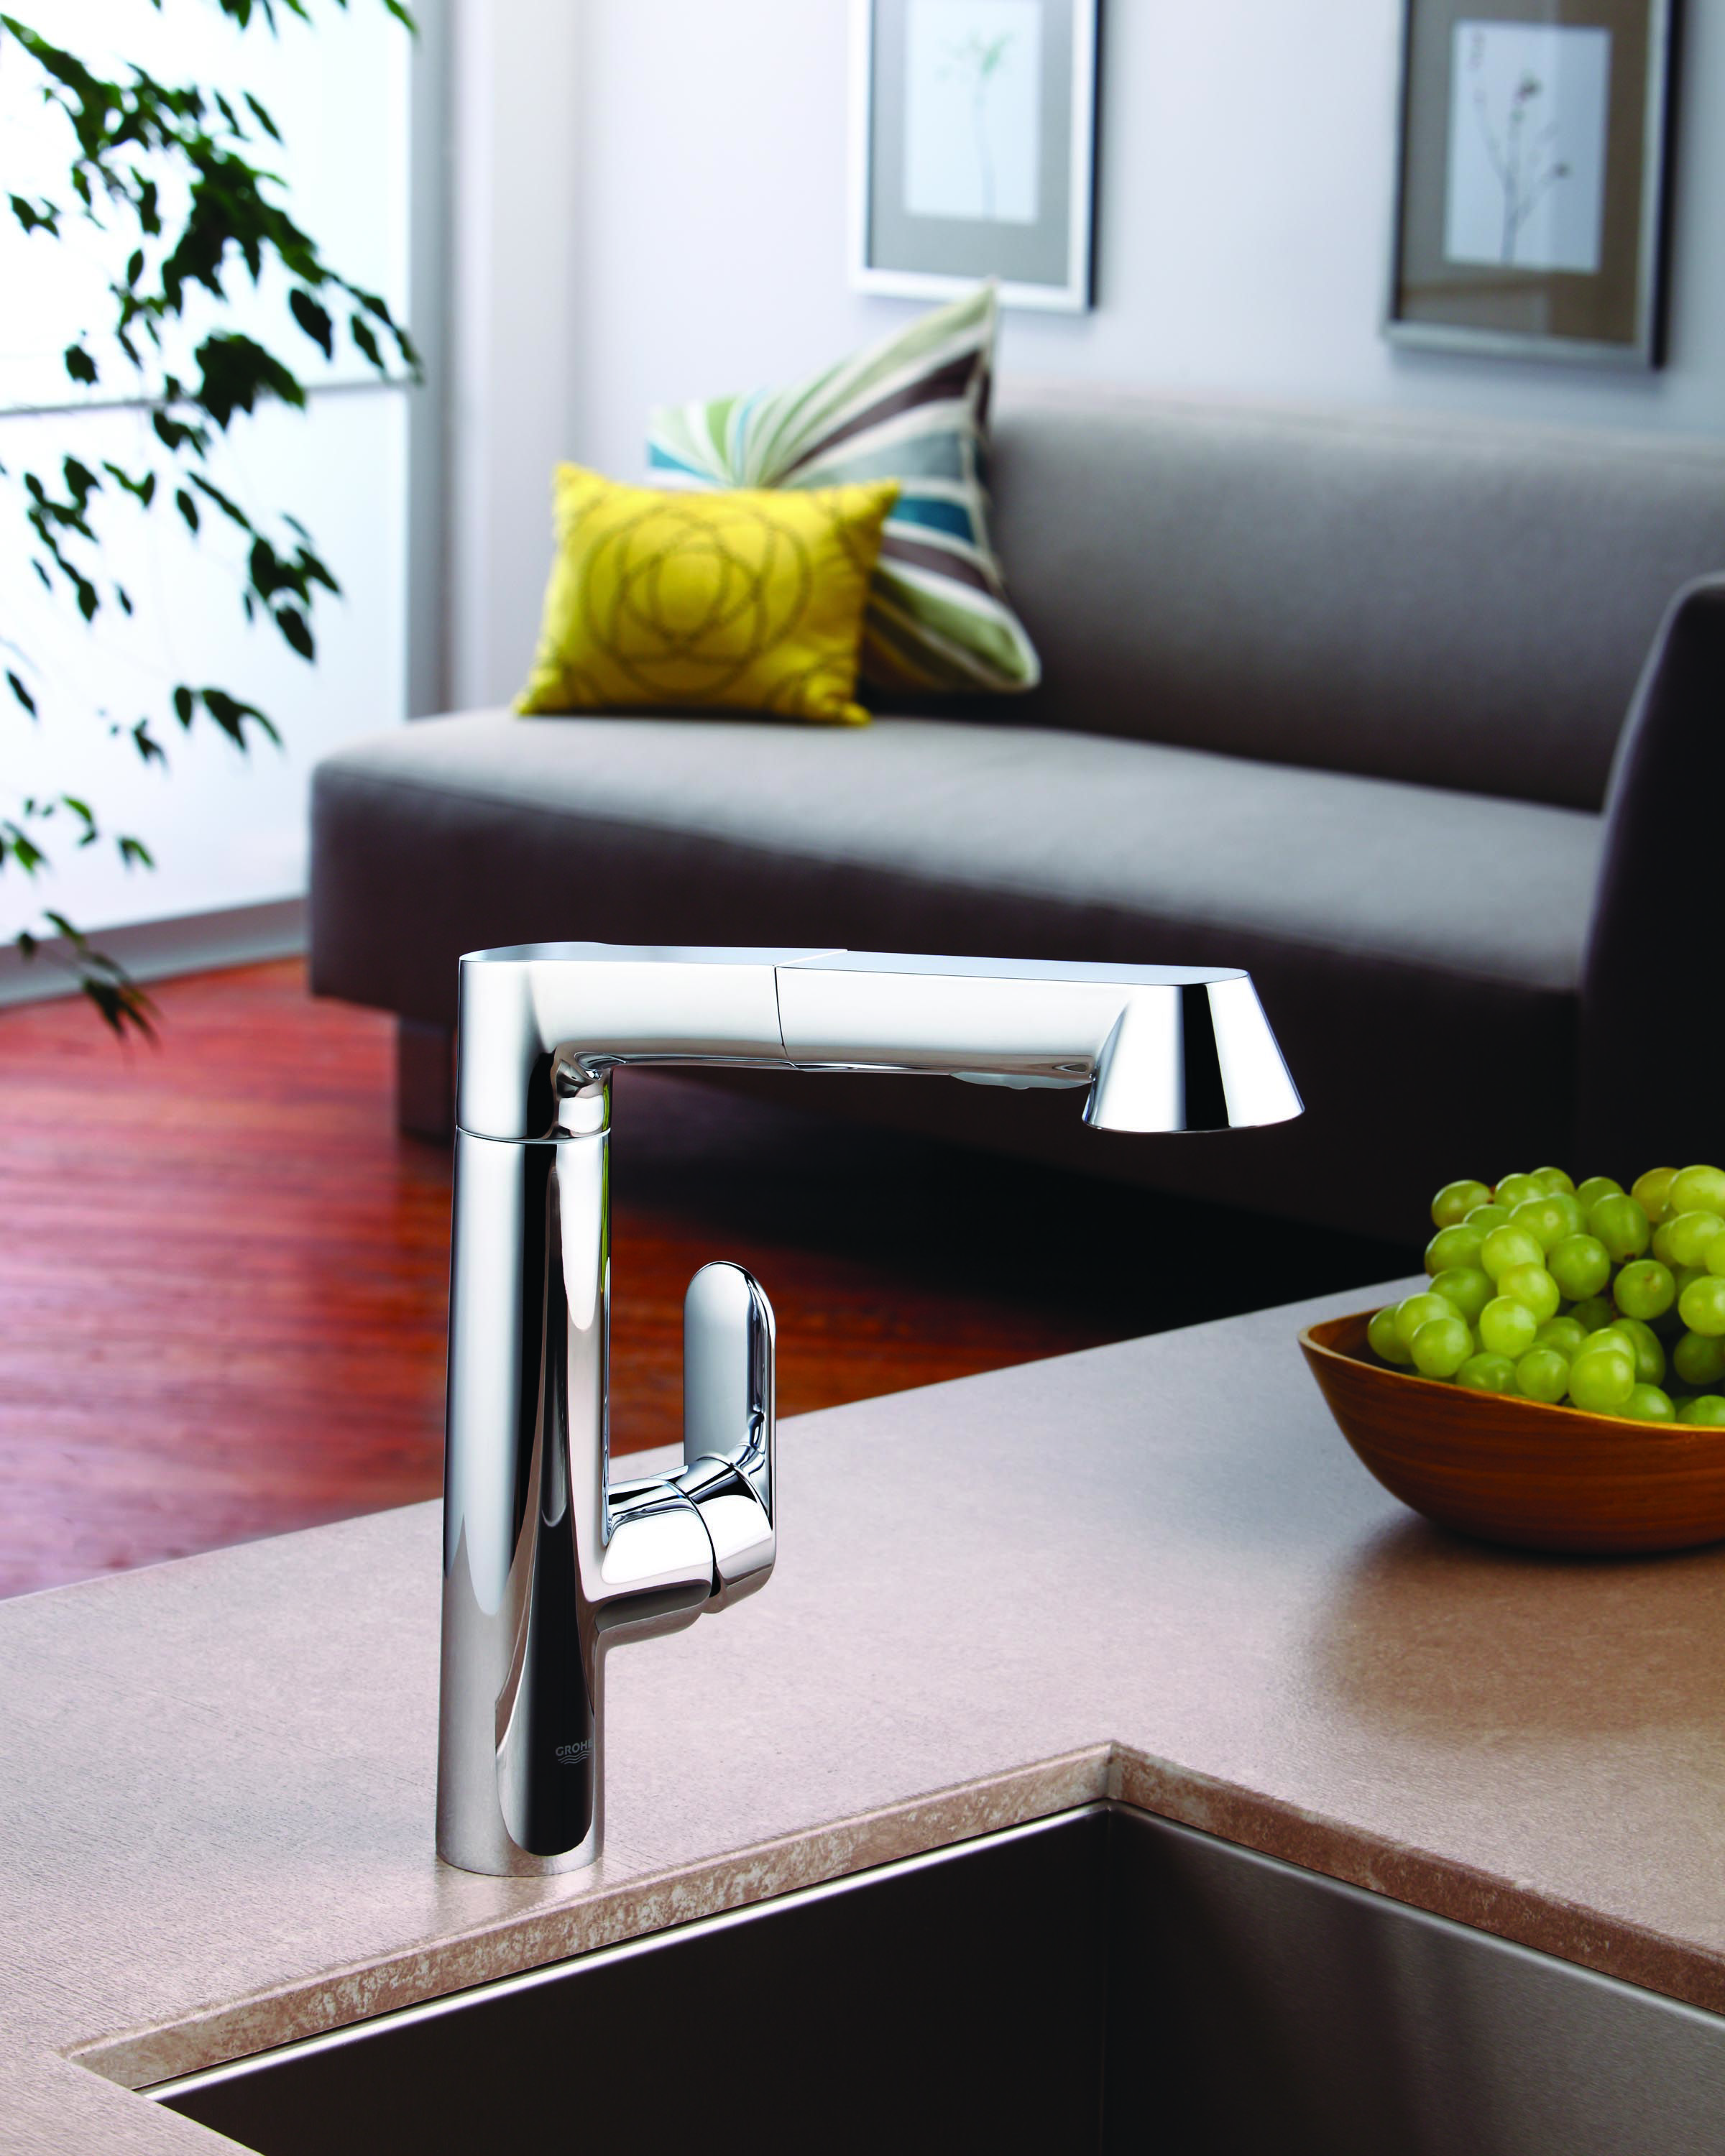 GROHE K7 Kitchen Faucet | GROHE KITCHEN INSPIRATION | Pinterest ...